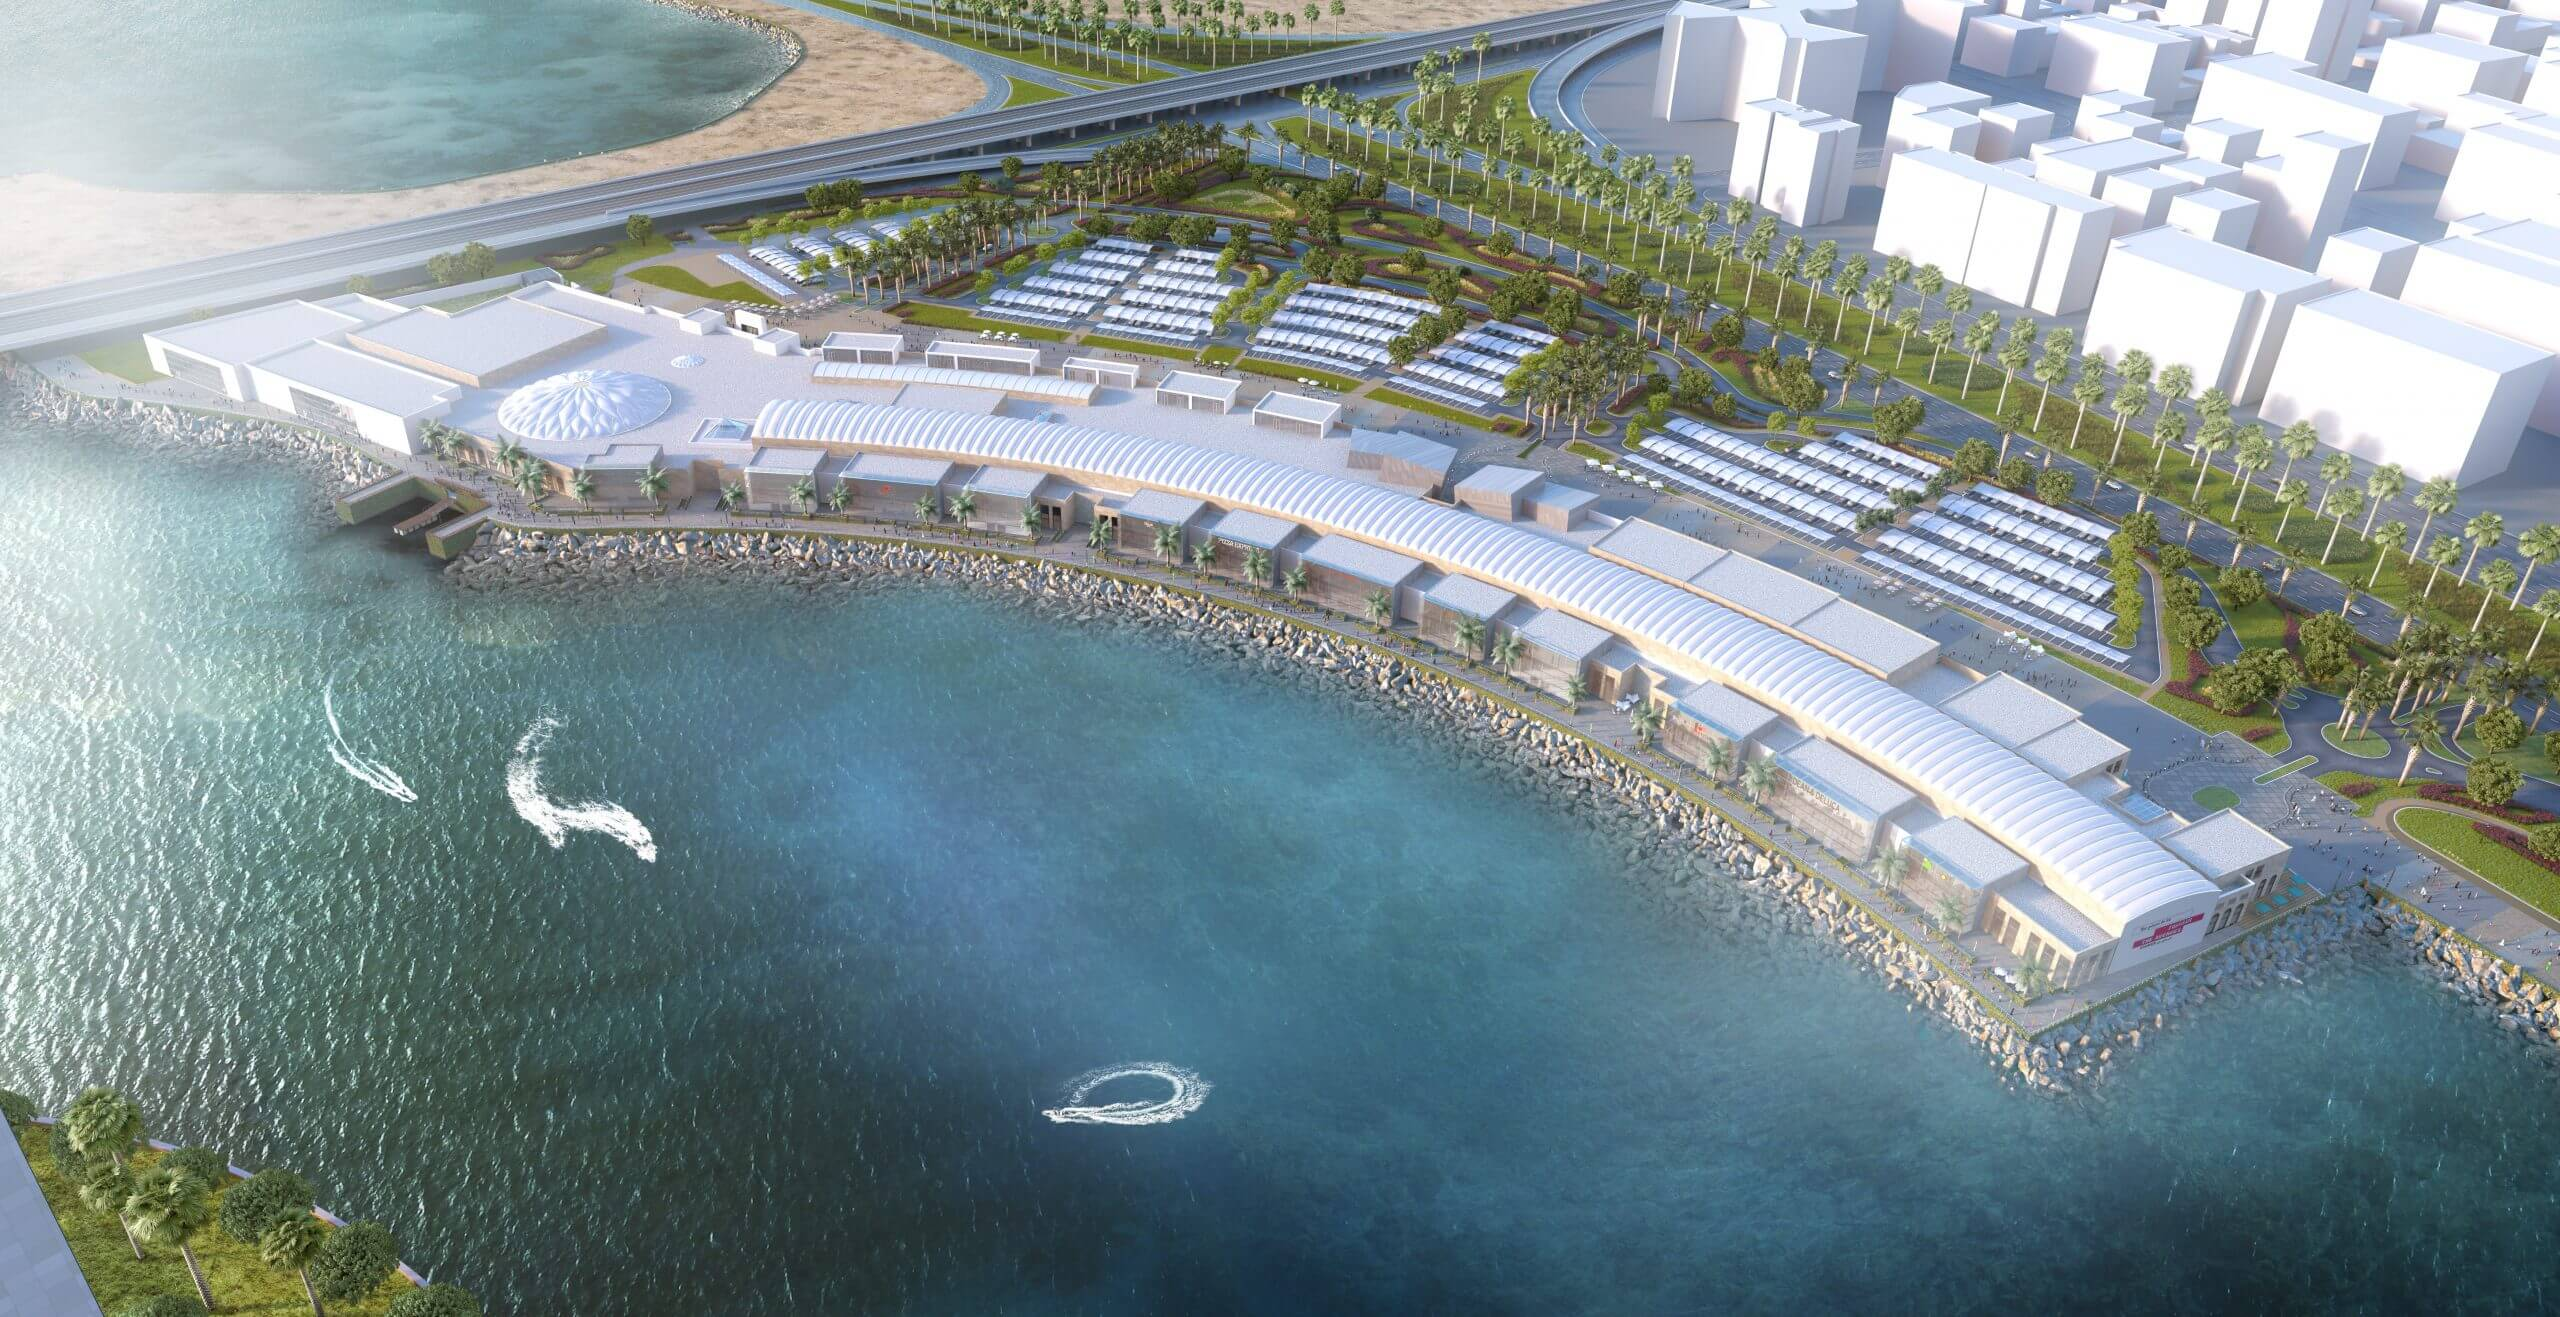 15 Hotels Worth US$10 billion to Open in Bahrain by 2020 • Room capacity to increase by 4,000 rooms